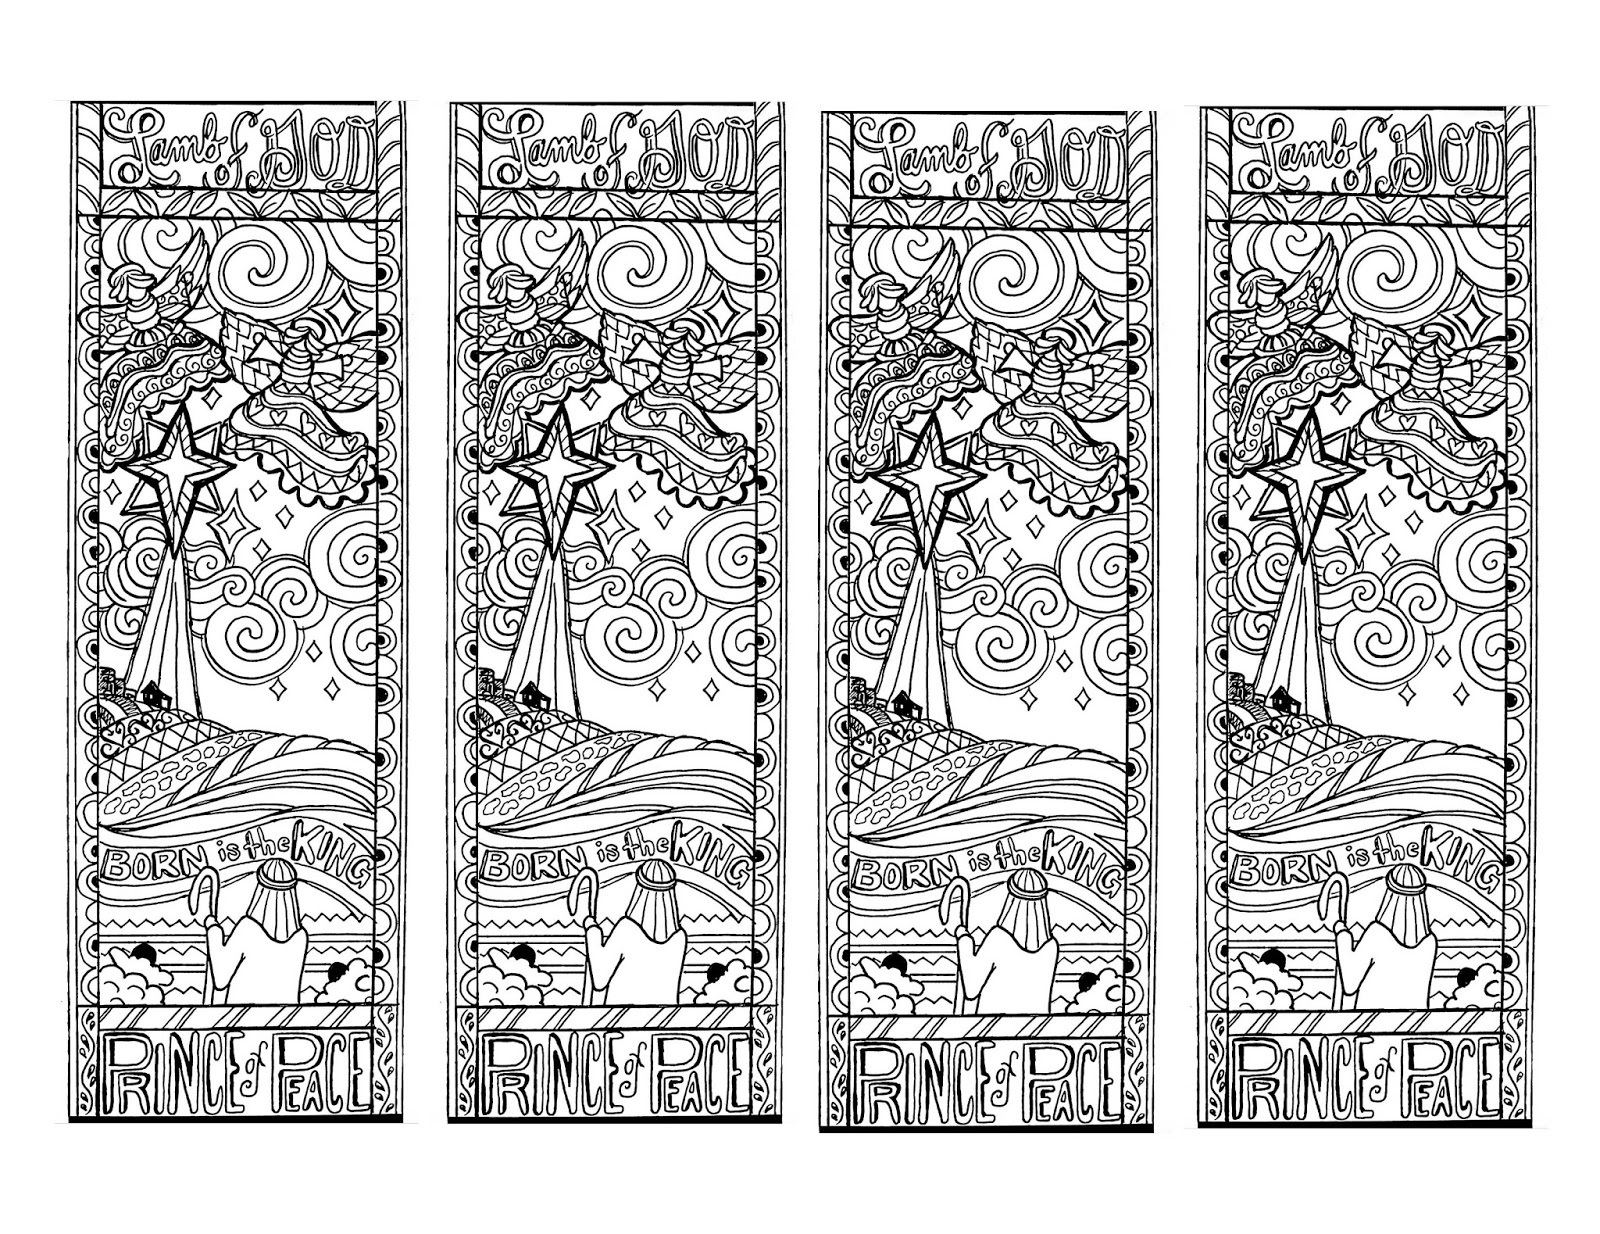 image about Free Black and White Printable Art referred to as Totally free Printable Looking through Bookmarks Black and White Match